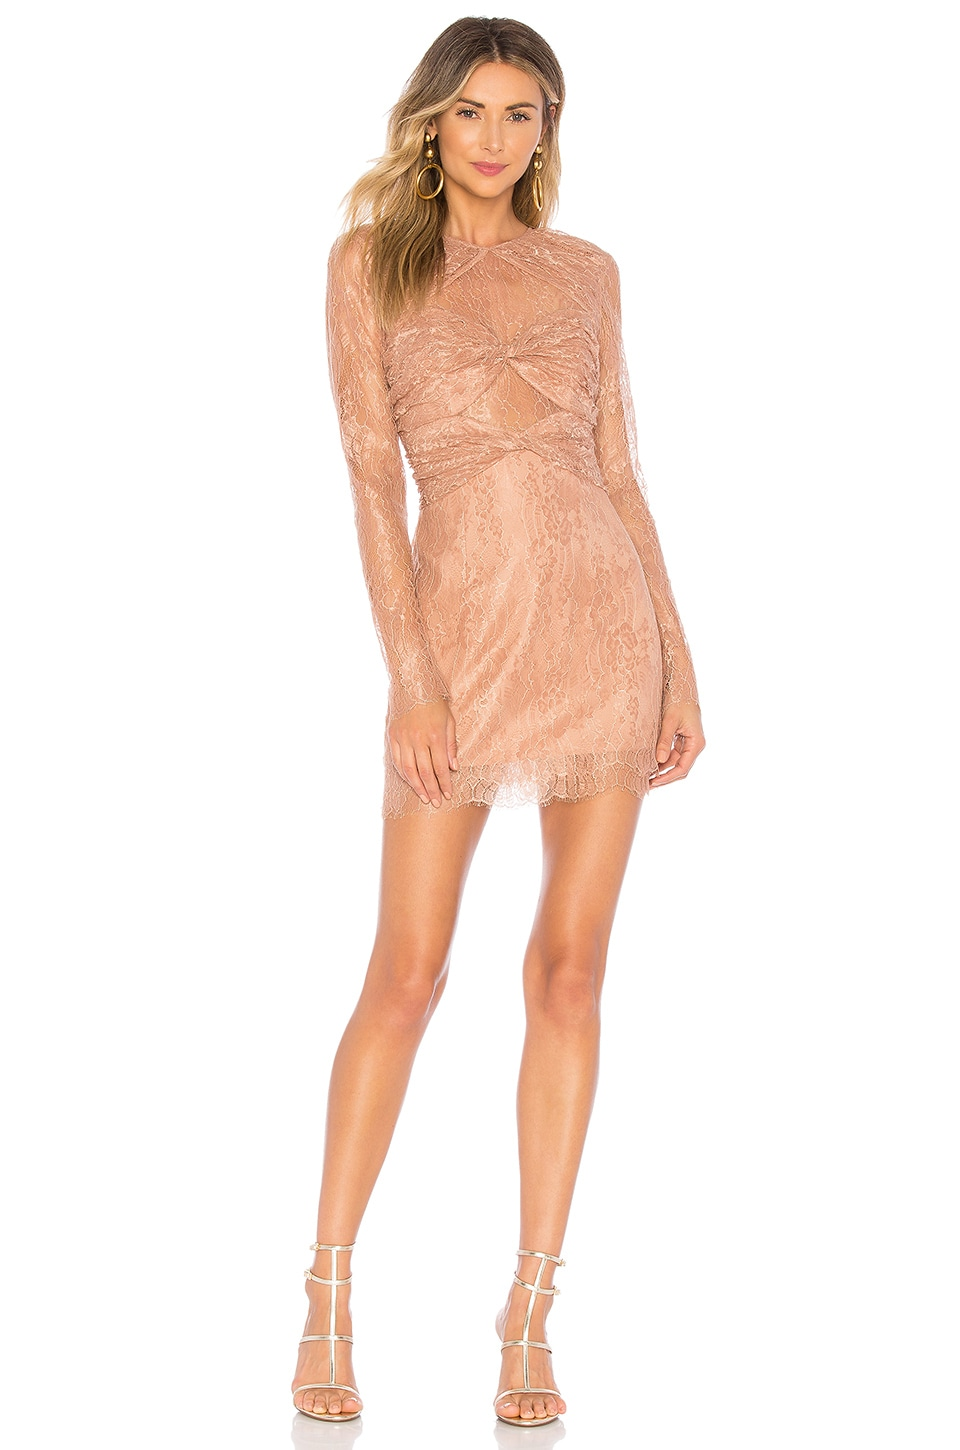 Alice McCall Not Your Girl Dress in Cinnamon